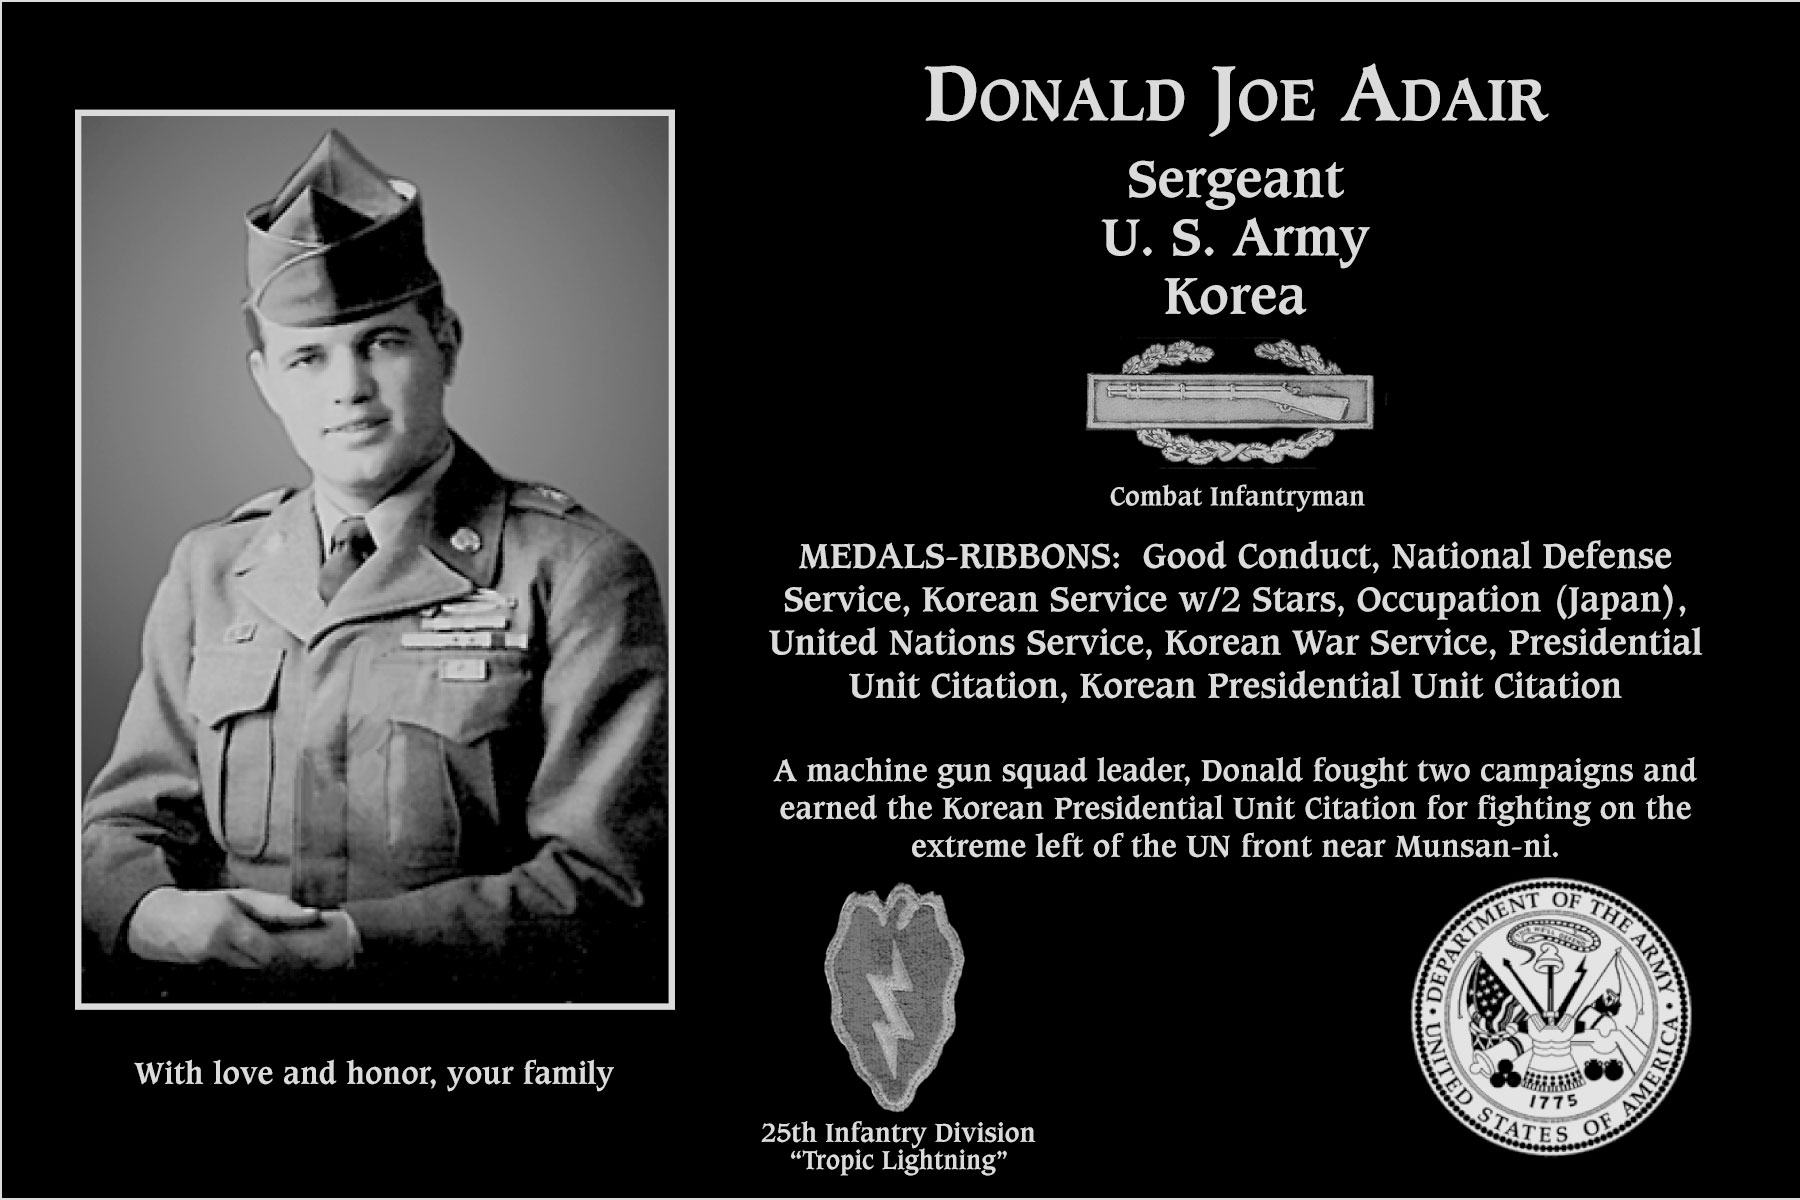 Donald Joe Adair